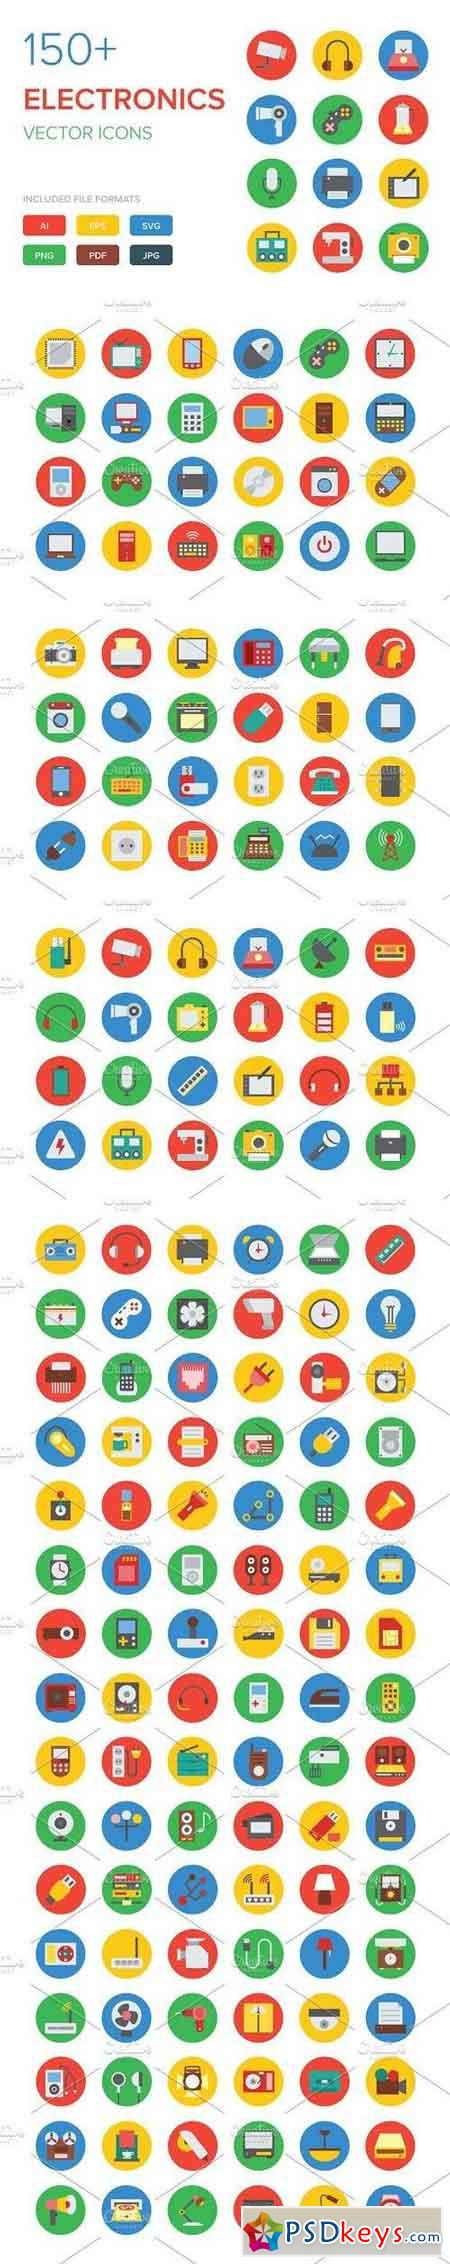 150+ Electronics Vector Icons 328582